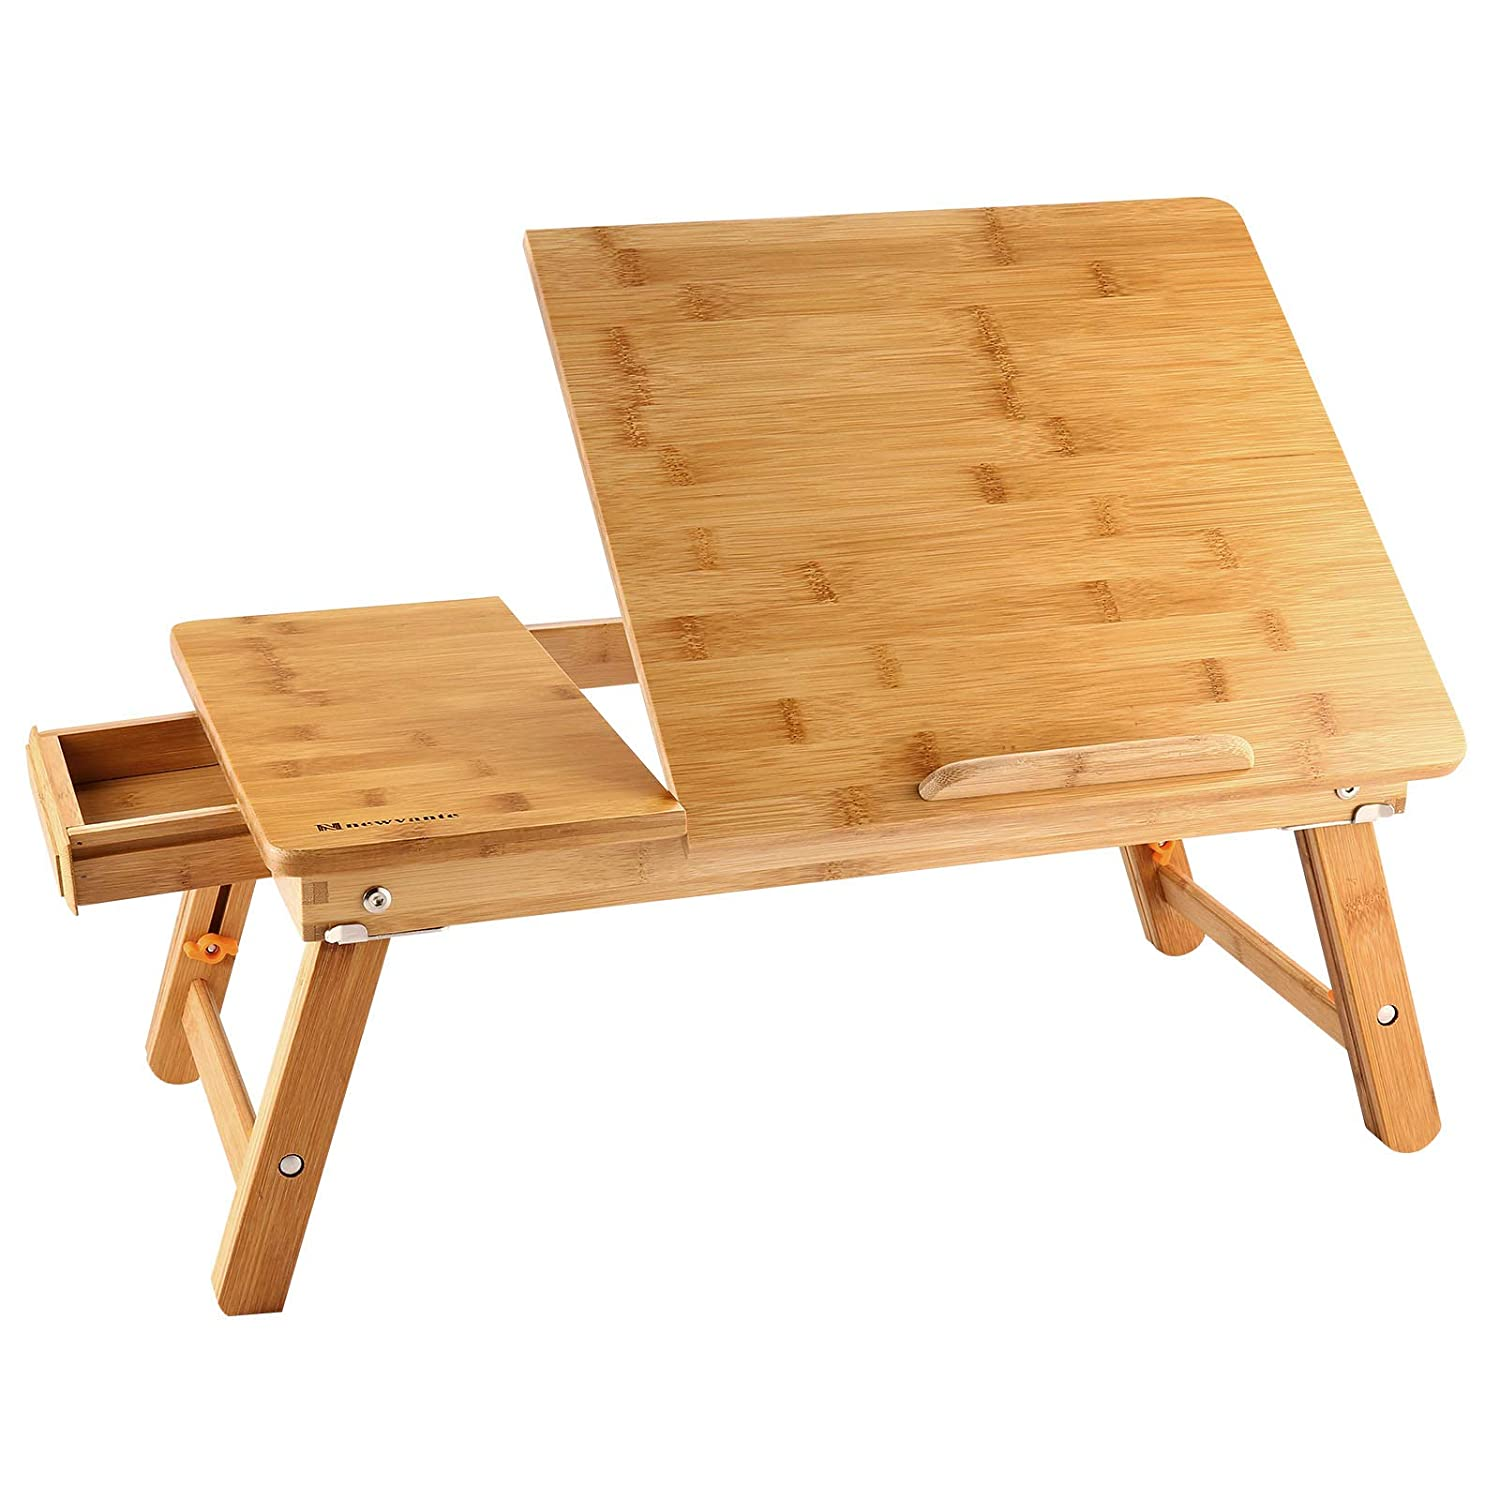 Lapdesk Left Handed NNEWVANTE Adjustable Laptop Table for Bed Breakfast Serving Tray Fold Flat w Tilting Top Drawer Leg Lock